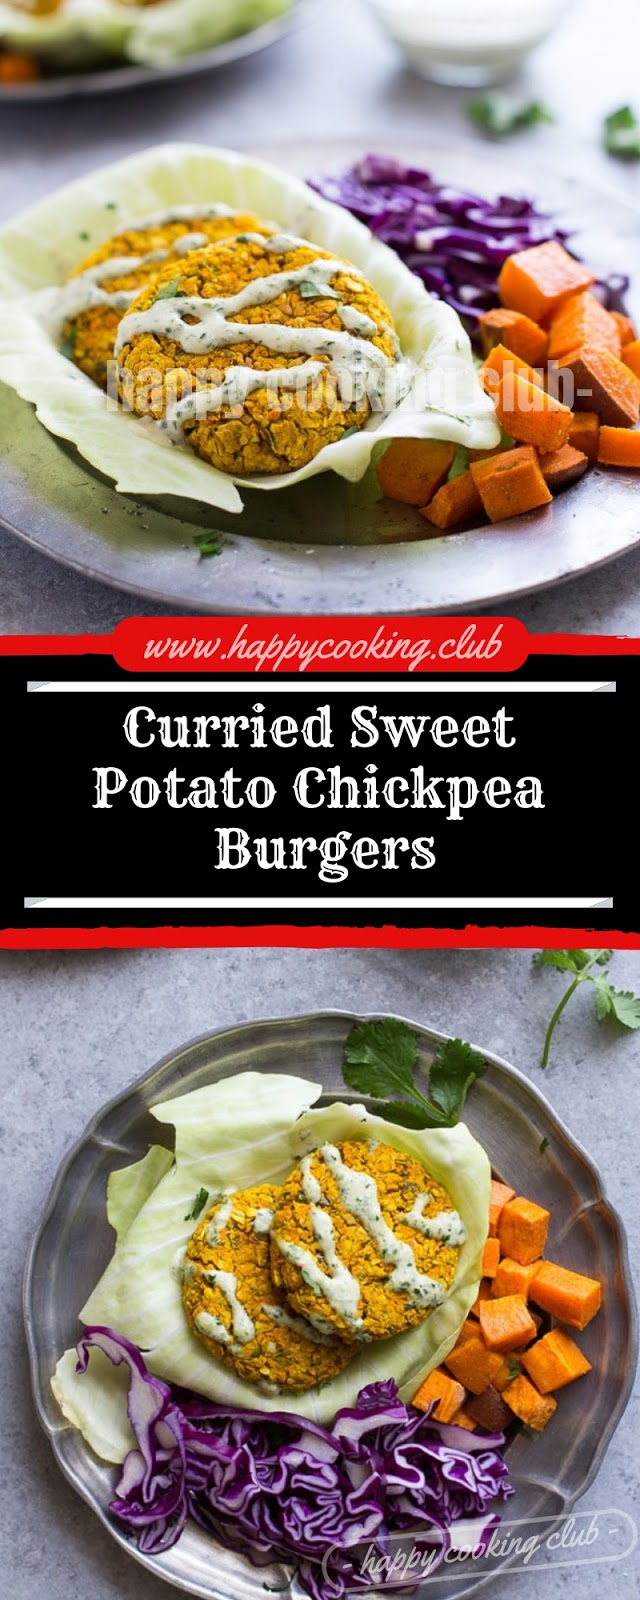 Curried Sweet Potato Chickpea Burgers